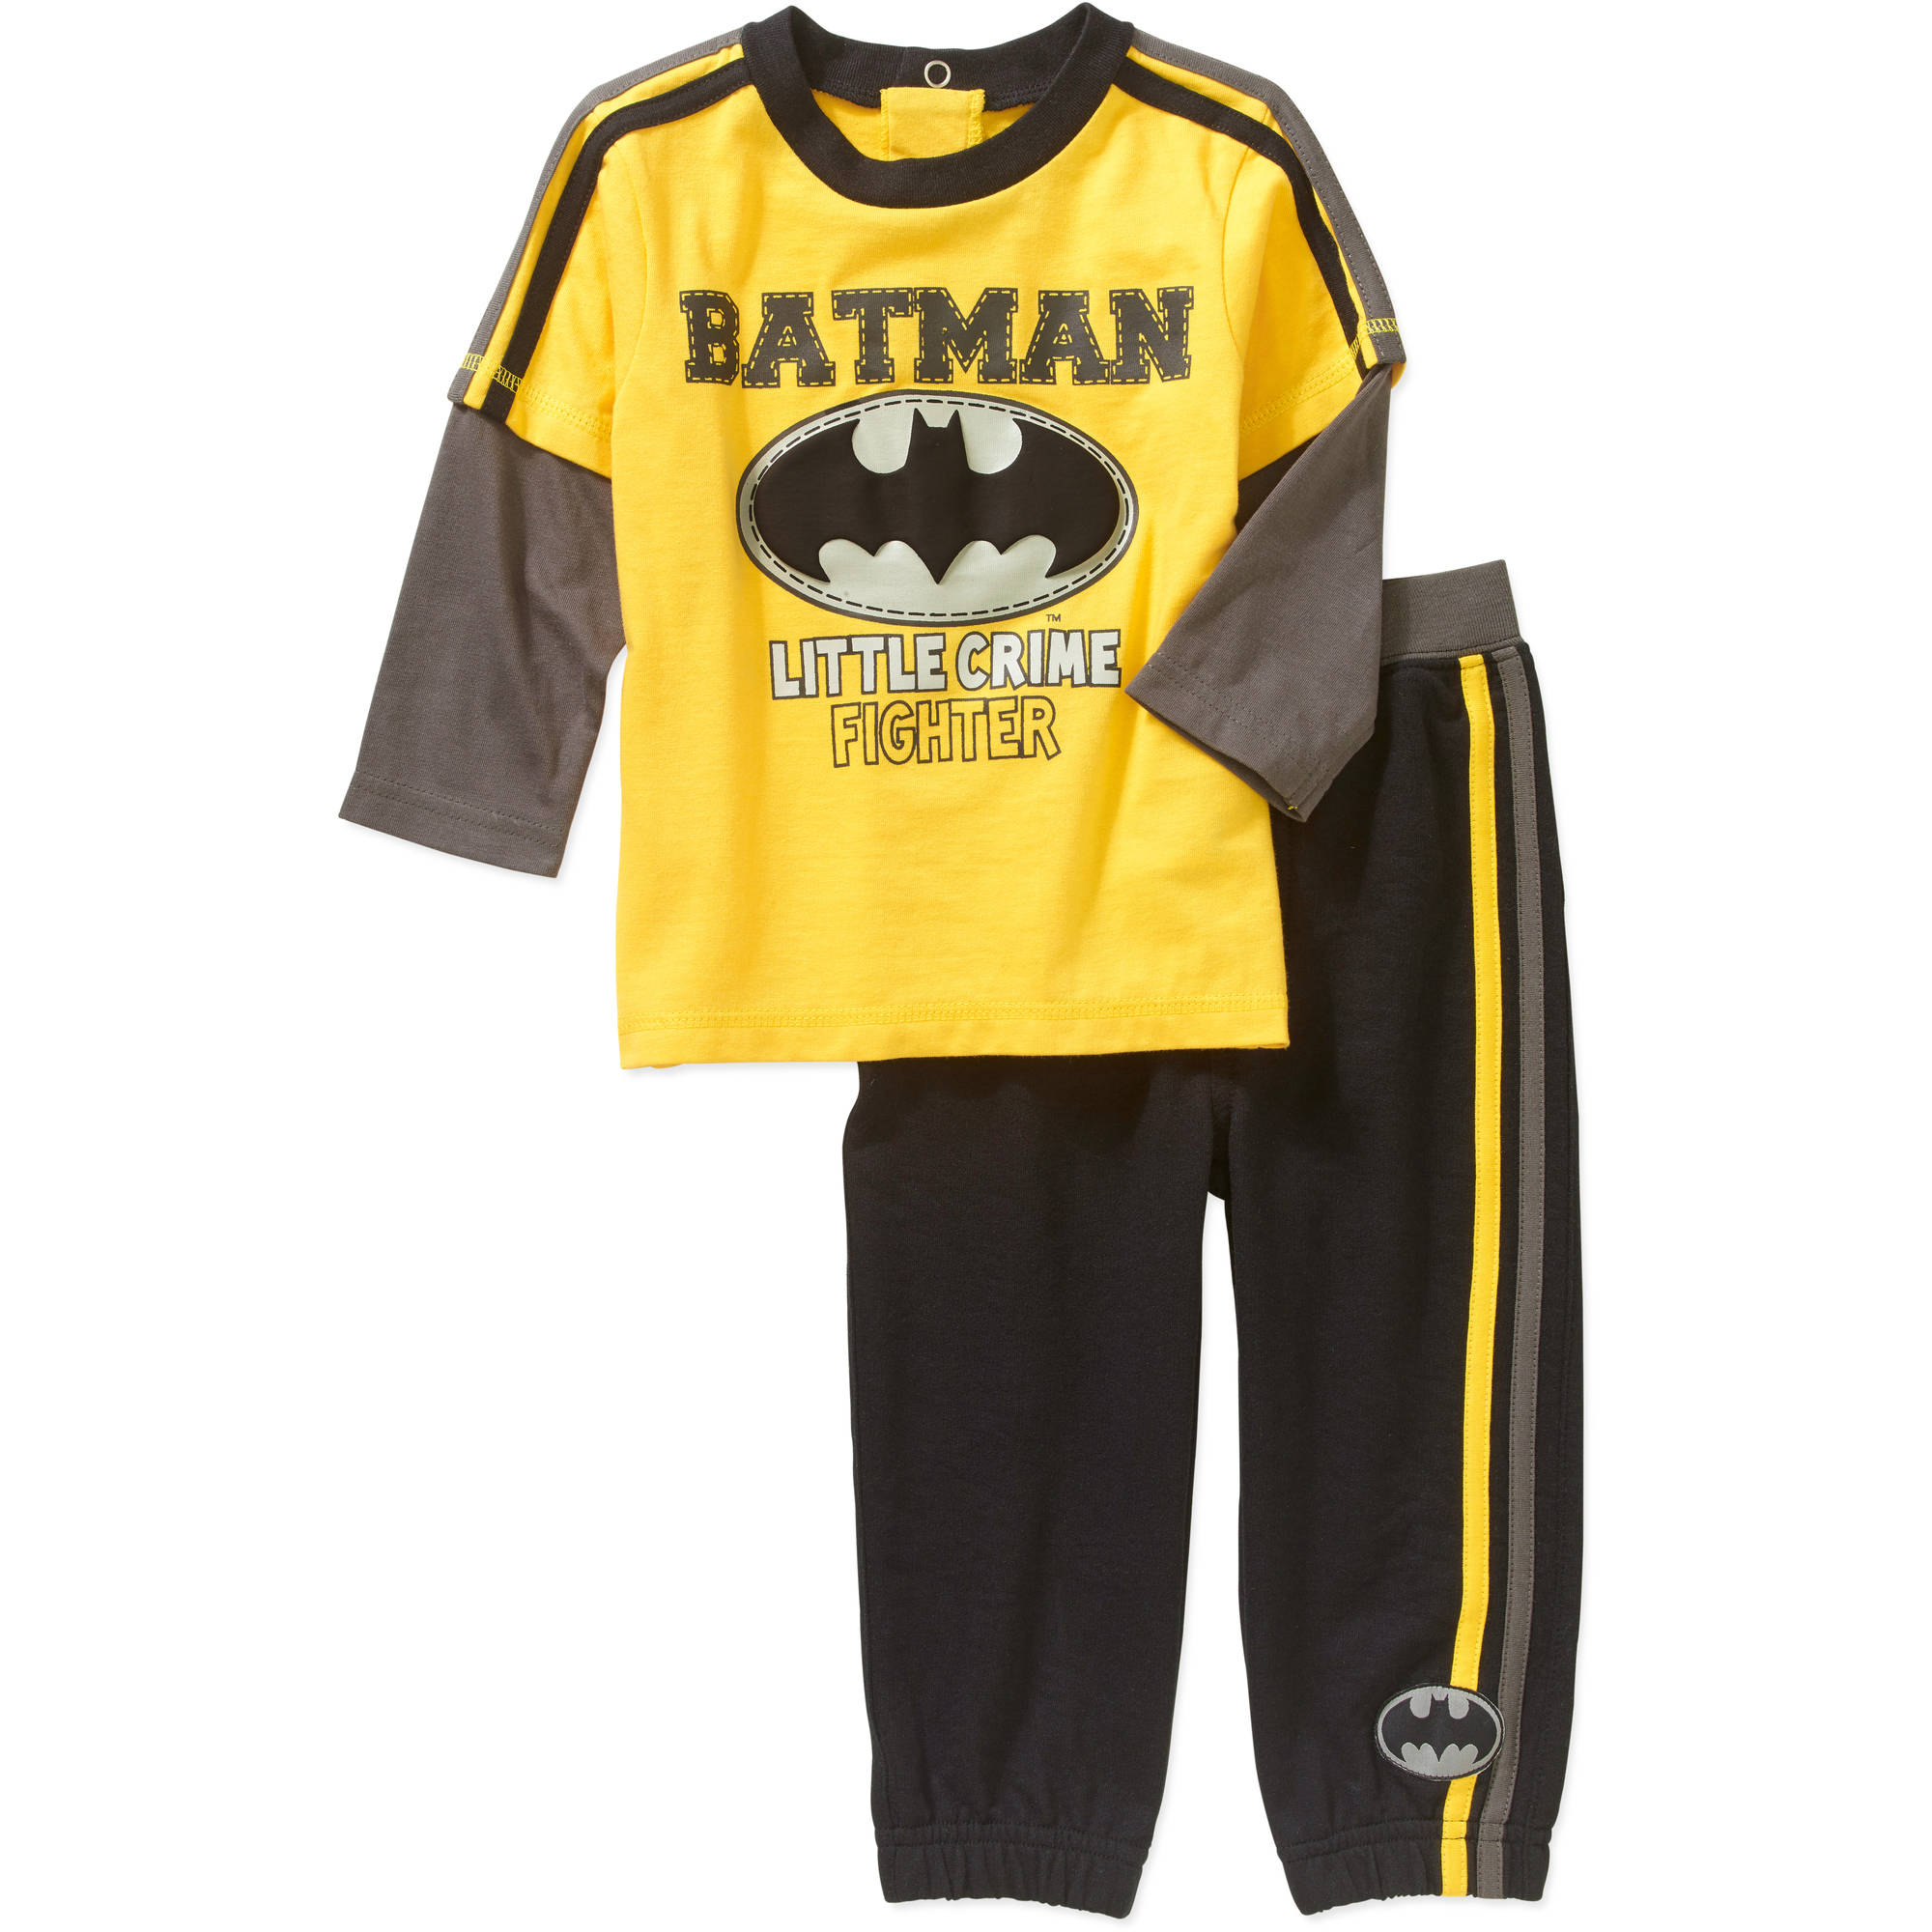 Batman Newborn Baby Boys' Long Sleeve Tee and Pant Set